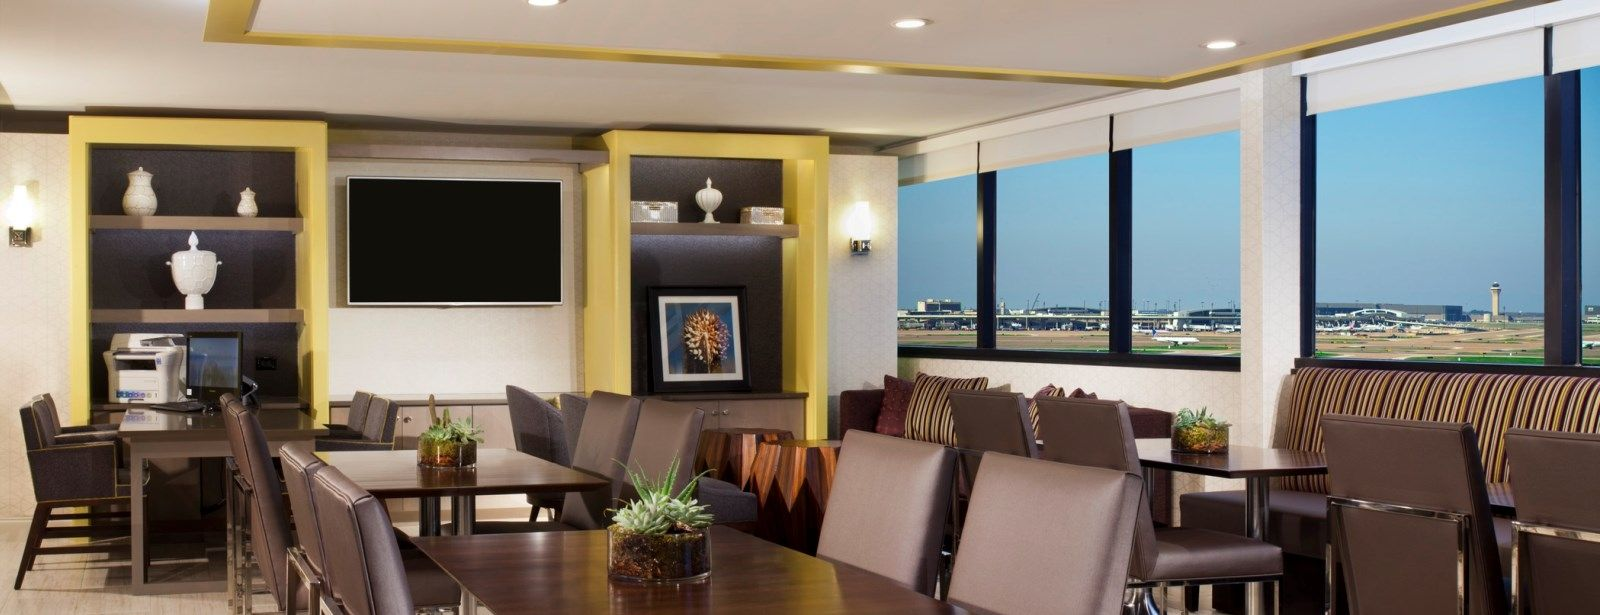 Club Level Room - Sheraton DFW Airport Hotel